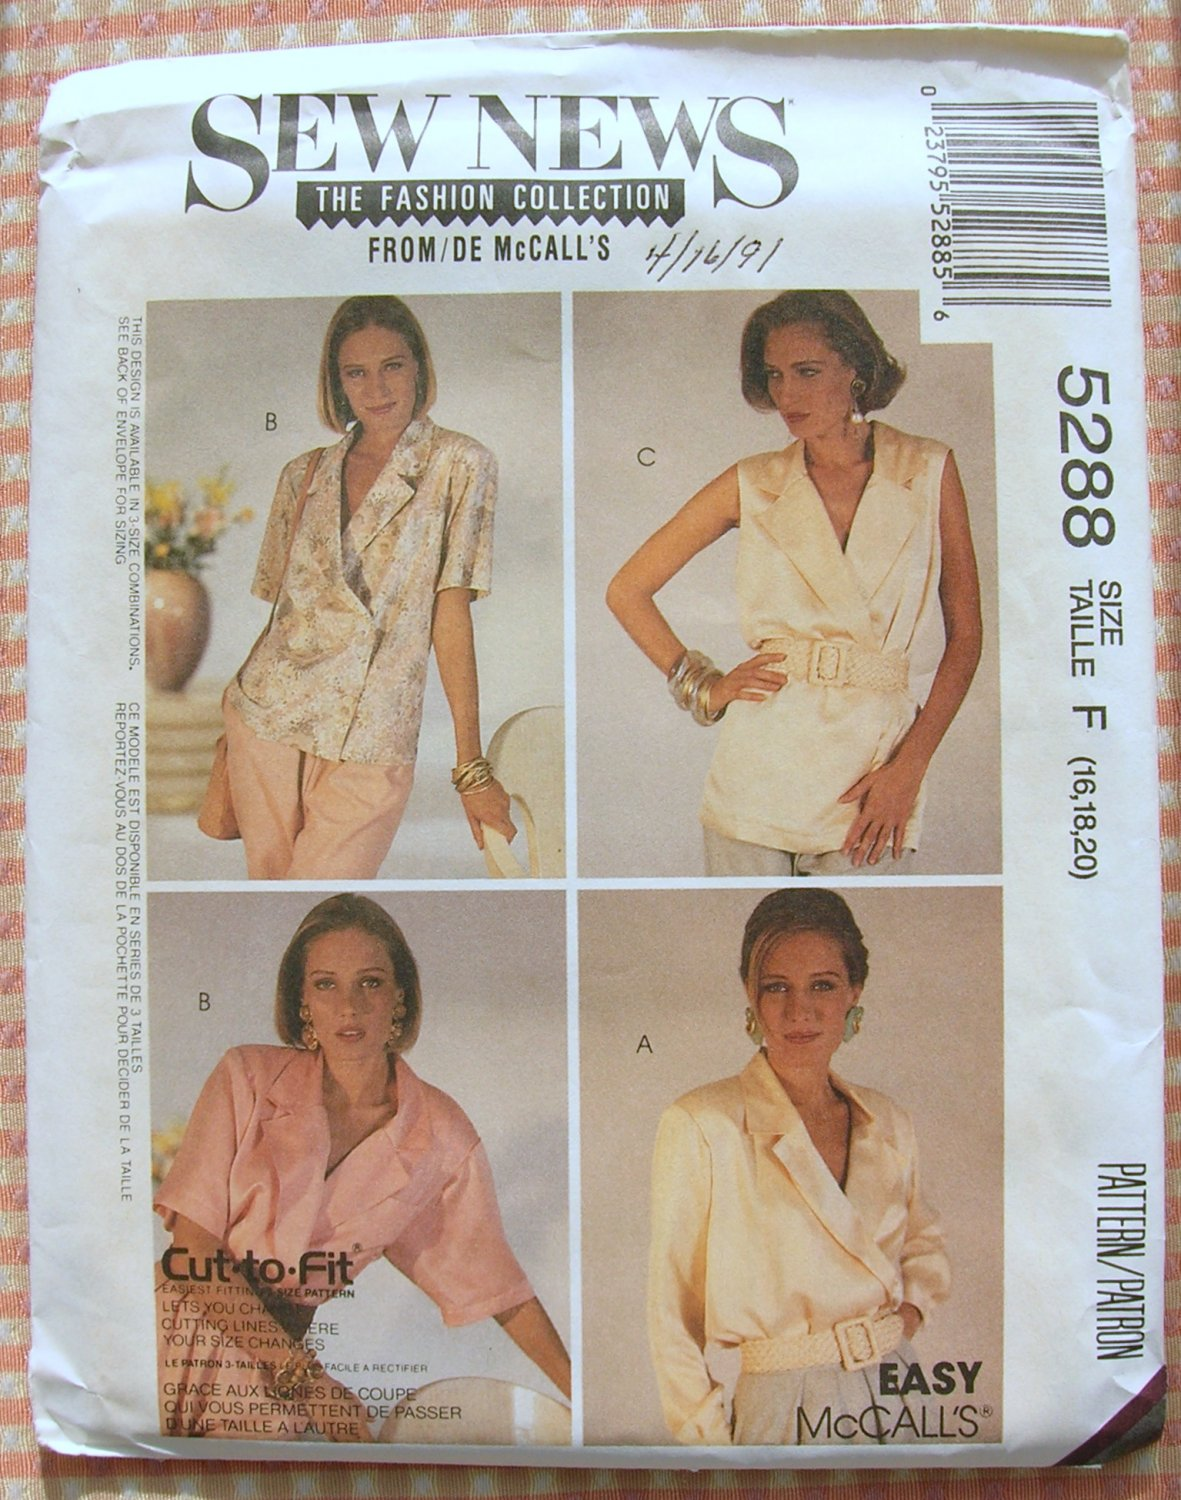 Blouse Vintage 90s Sewing Pattern McCall's 5288